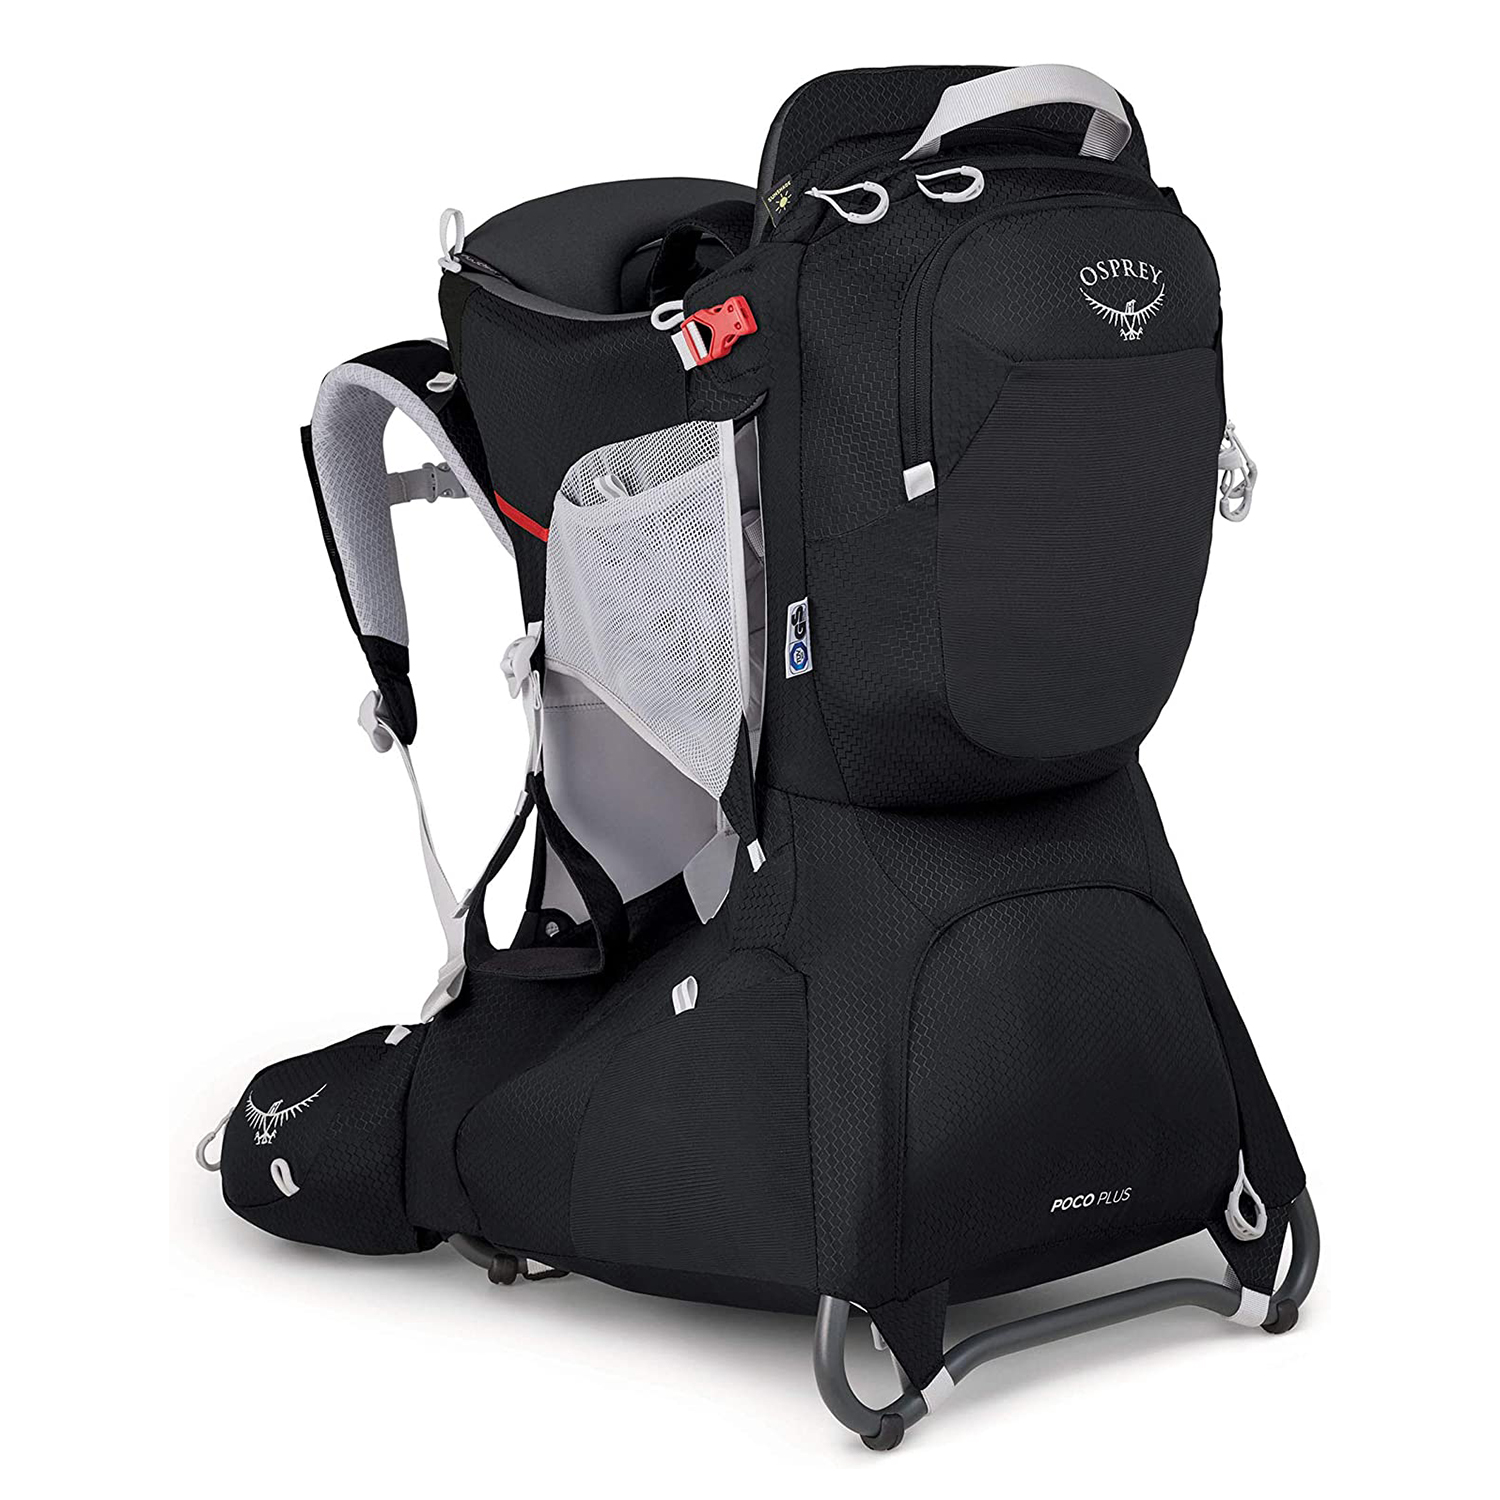 Best Hiking Backpack Carrier With Storage Space: Osprey Poco Plus